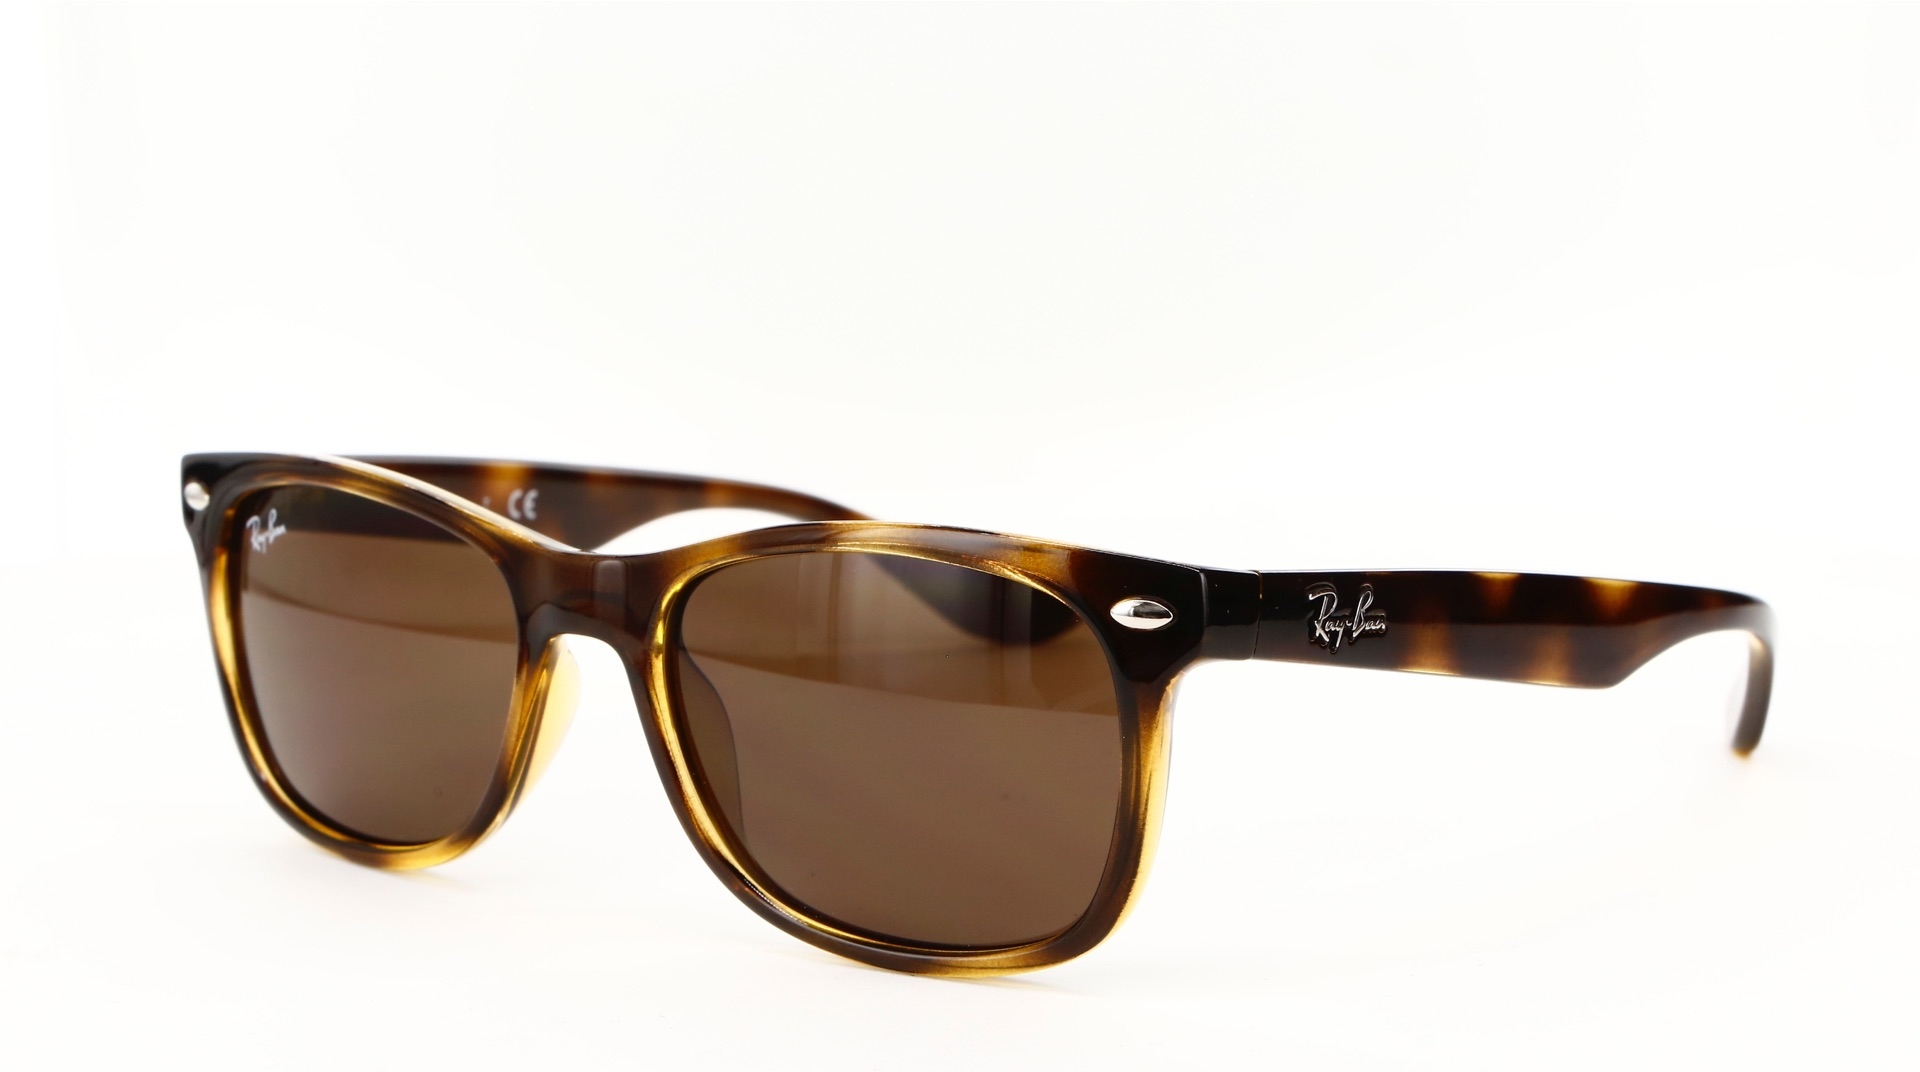 Ray-Ban - ref: 62855